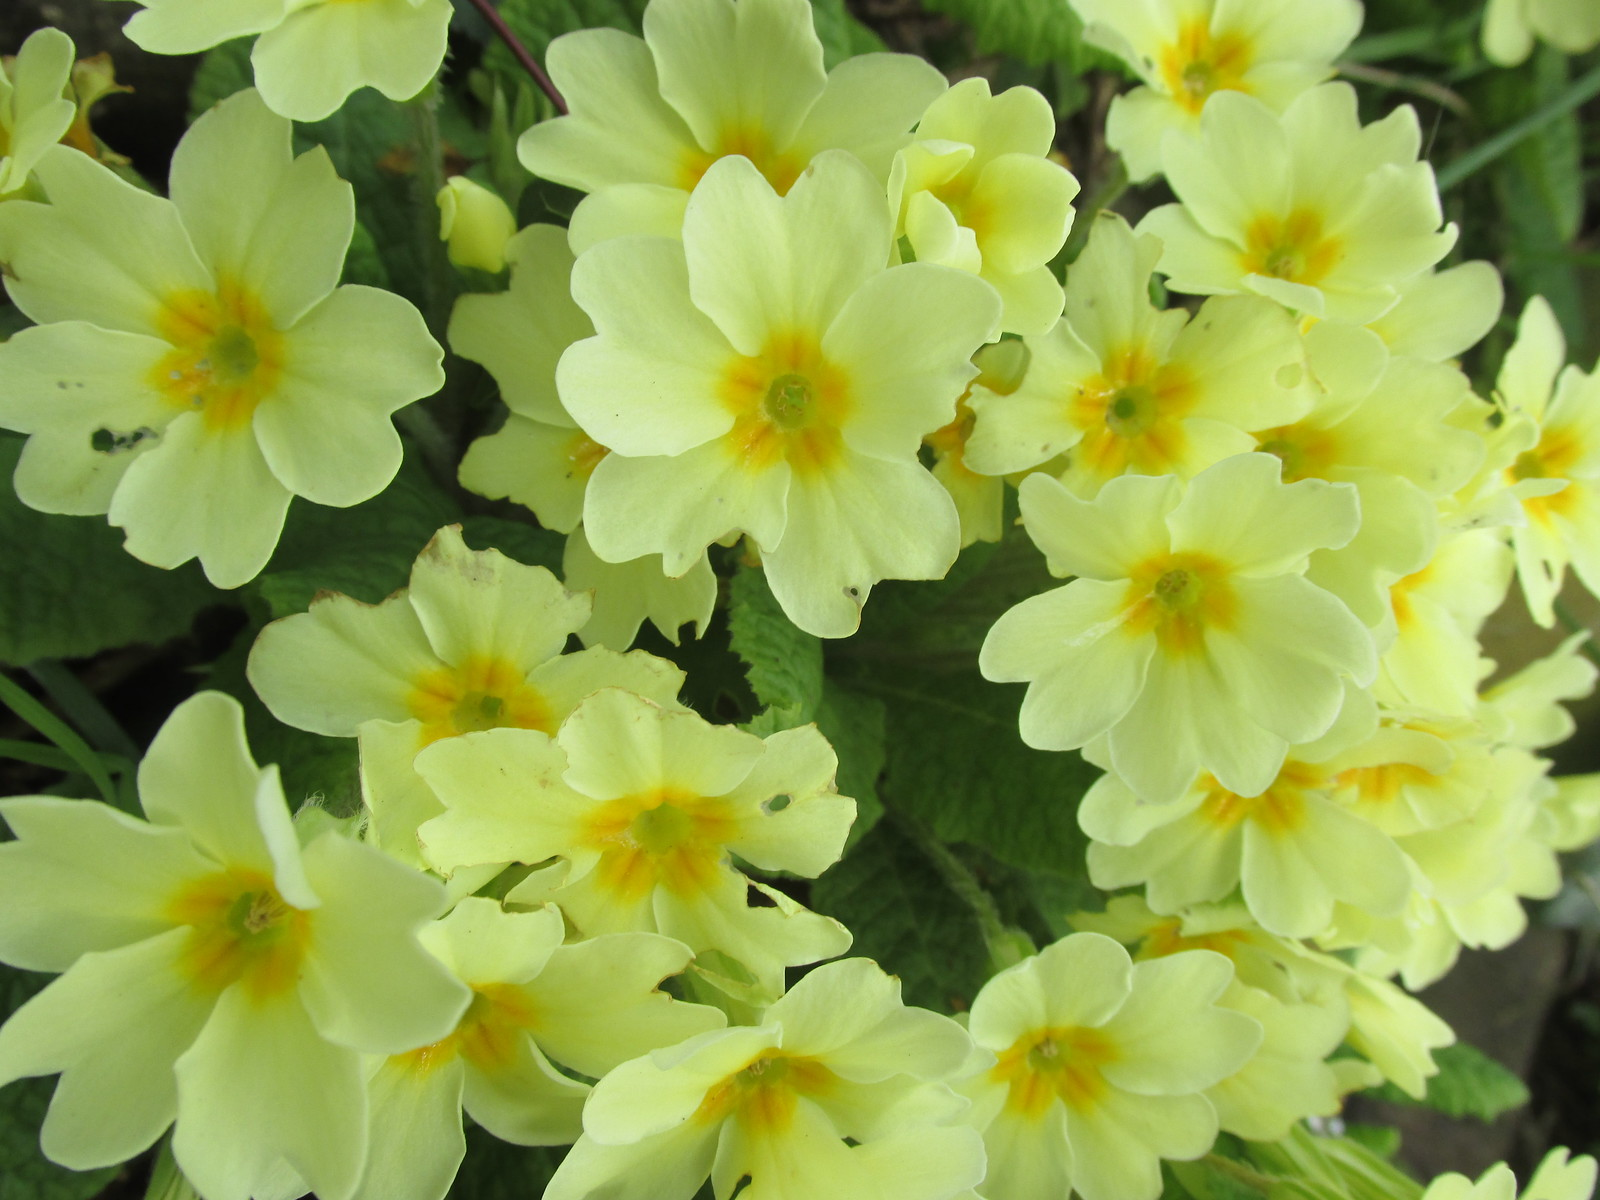 April 6, 2015: Glynde to Seaford South Downs primroses